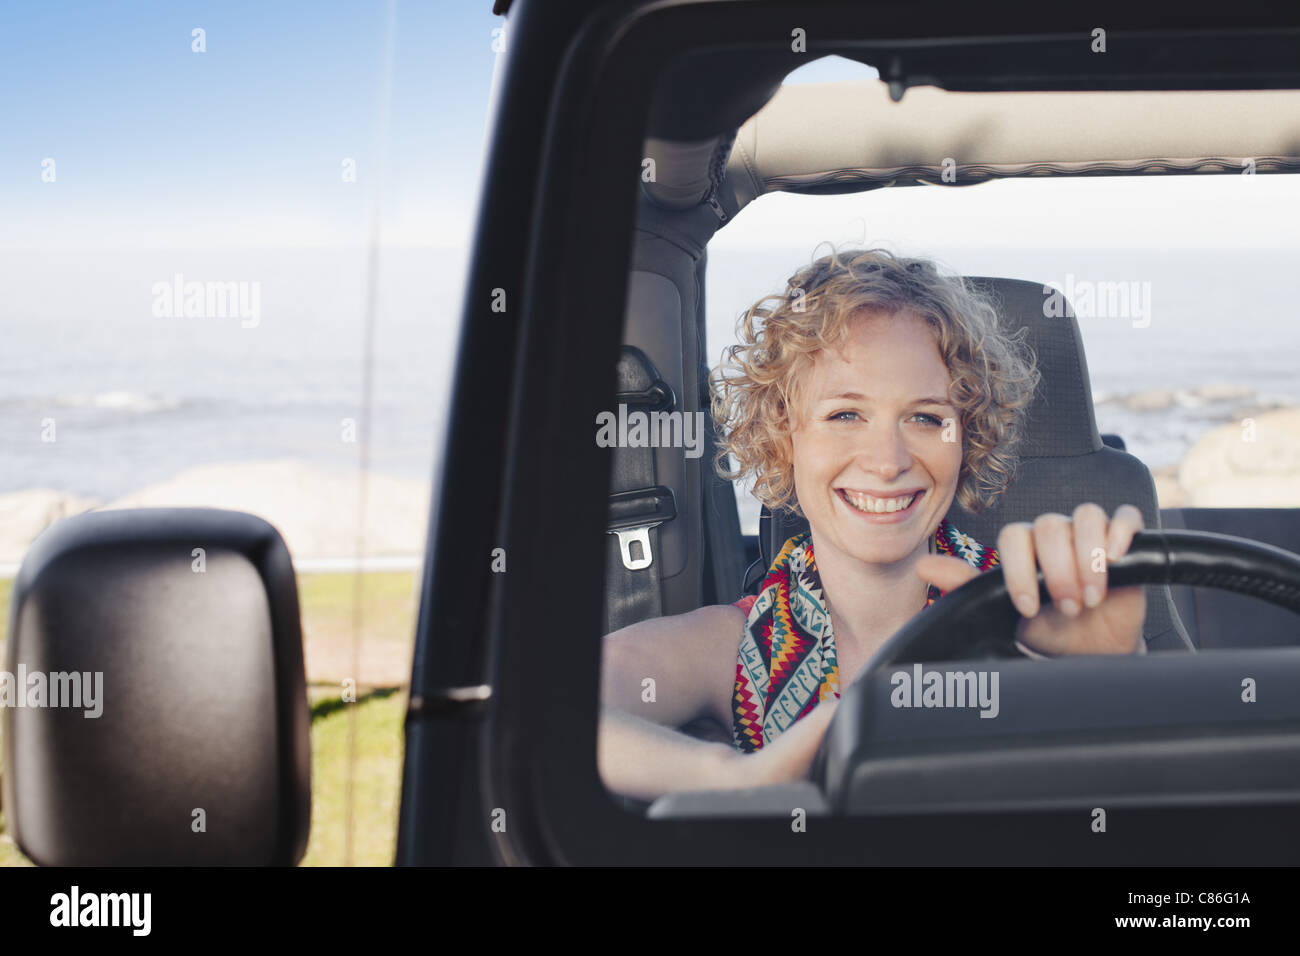 Smiling woman driving jeep - Stock Image